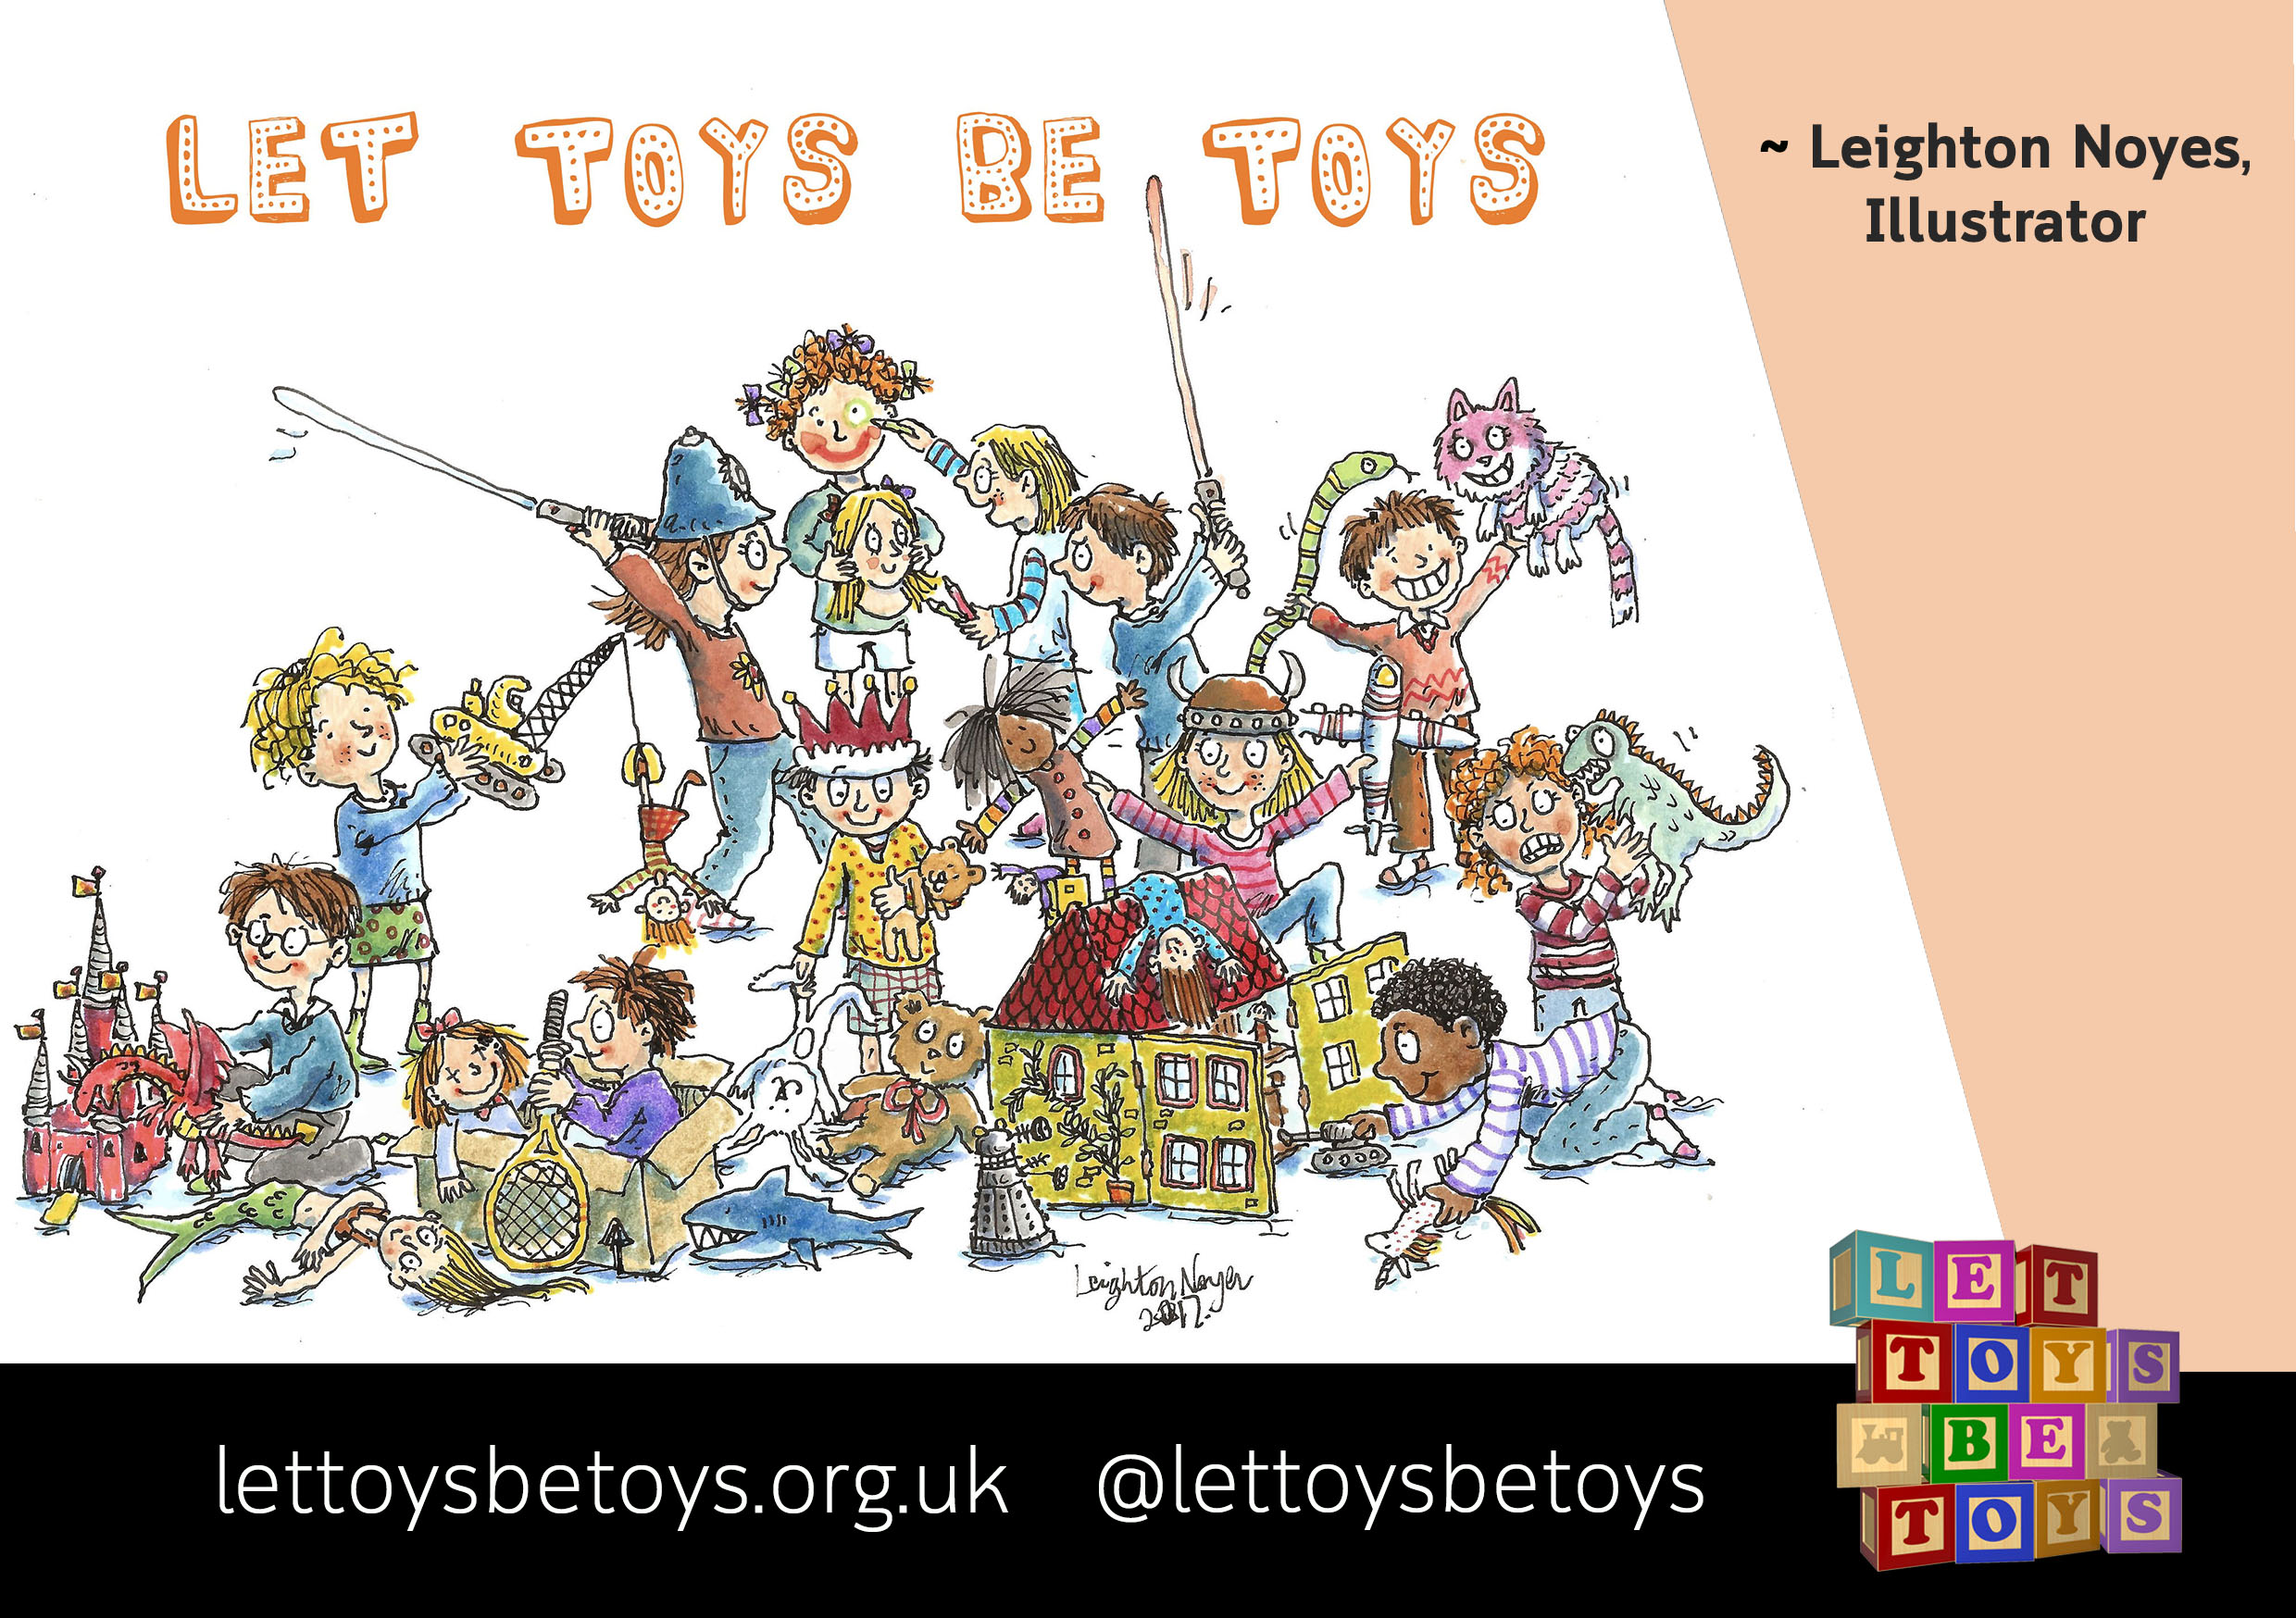 Leighton Noyes, Illustrator: An illustration of a dozen children of different genders playing with a range of different toys